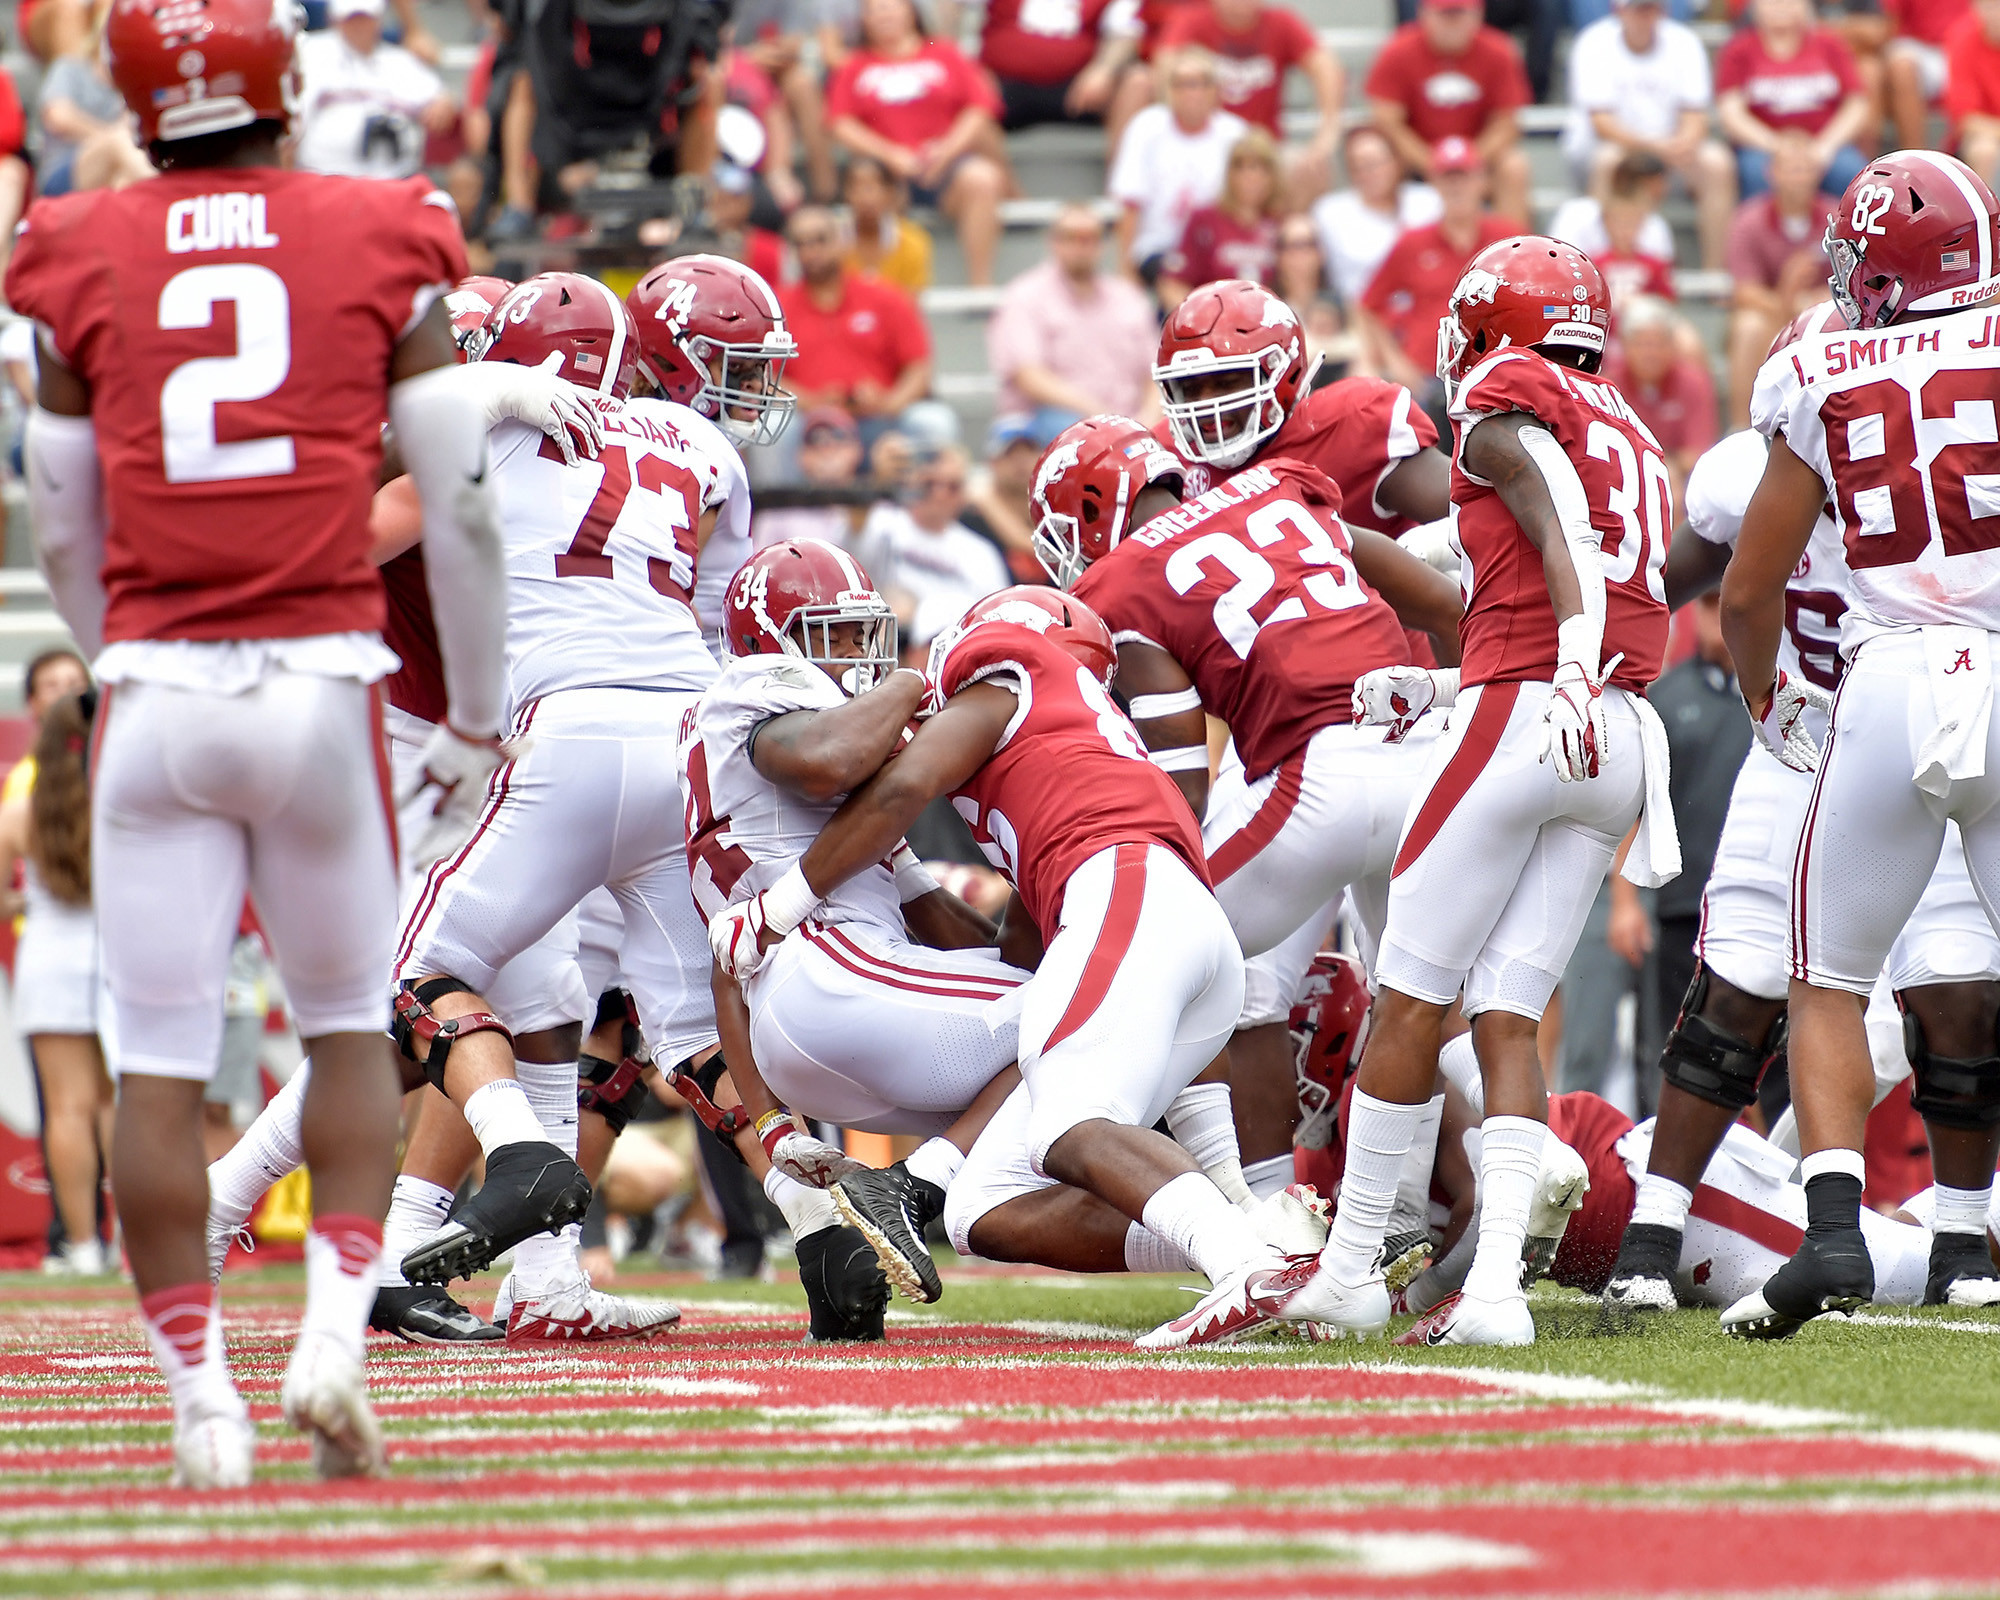 Alabama Crimson Tide running back Damien Harris (34) scores a touchdown in the first half of the NCAA football game at Razorback Stadium on Oct. 6, 2018, in Fayetteville, Ark. Alabama defeated Arkansas 65-31. (Photo by Lee Walls)